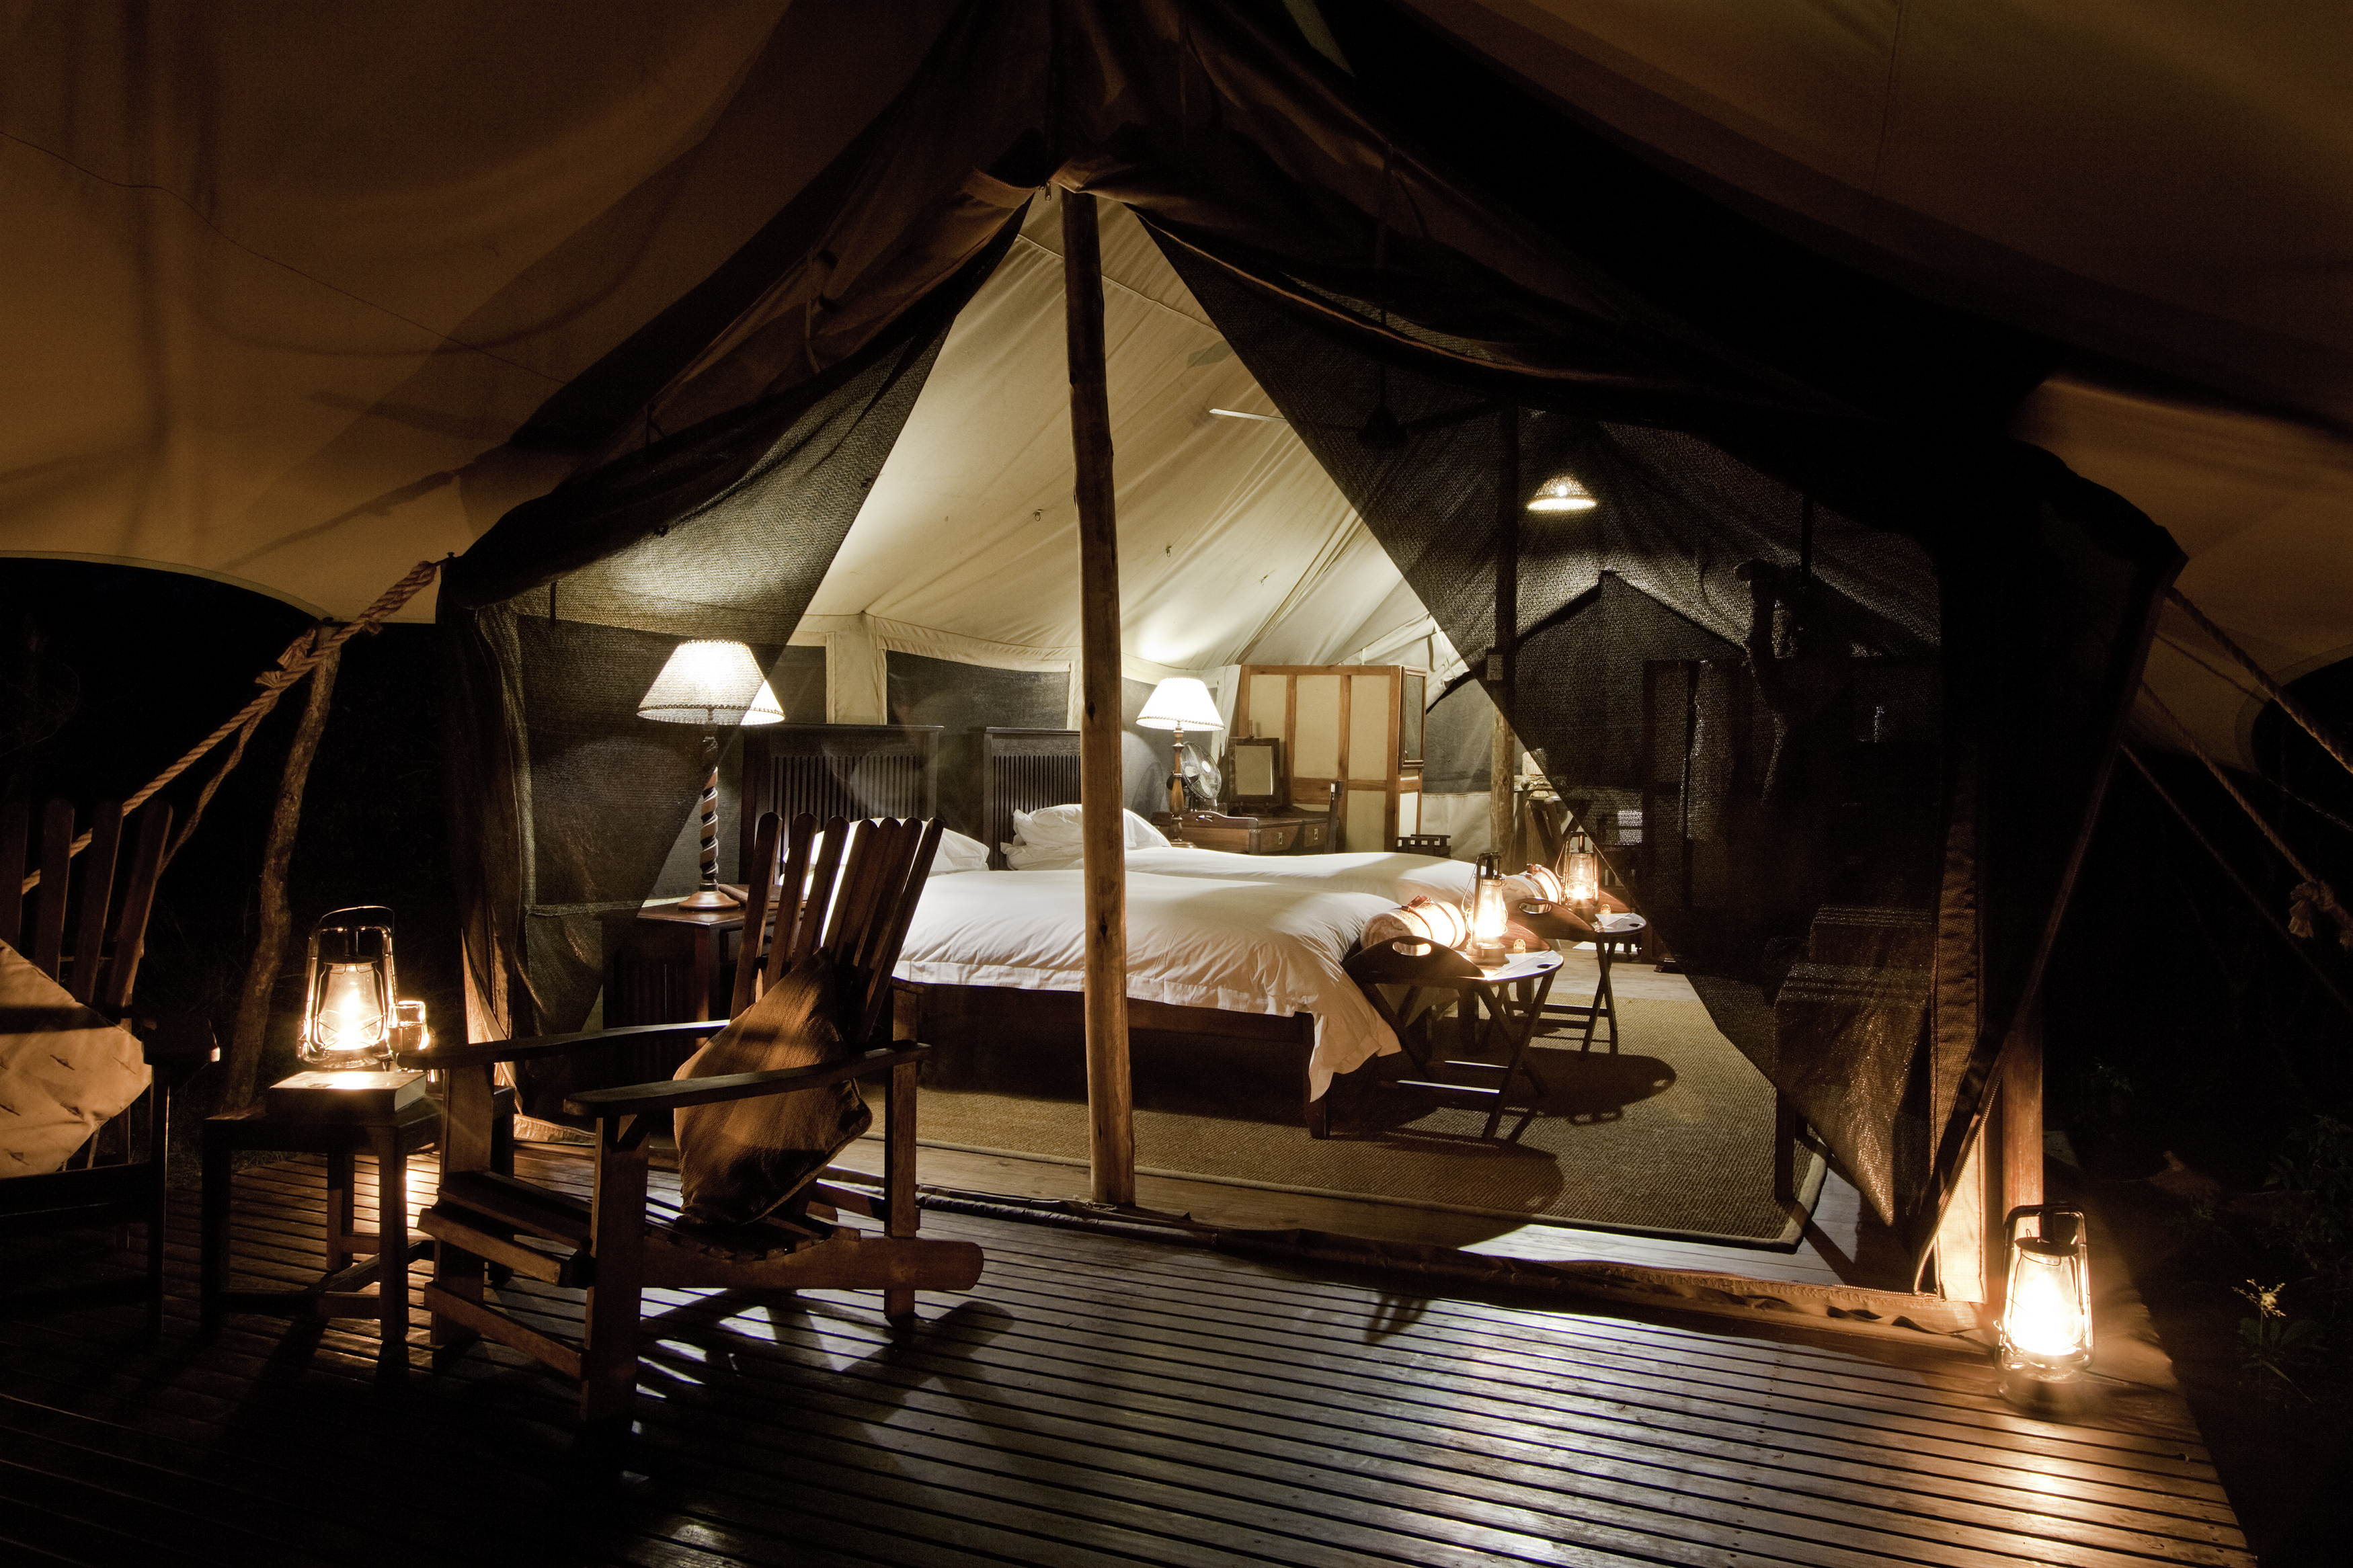 One for the bucket list - sleeping under canvas in an 1820's style explorer tent in the Kruger National Park